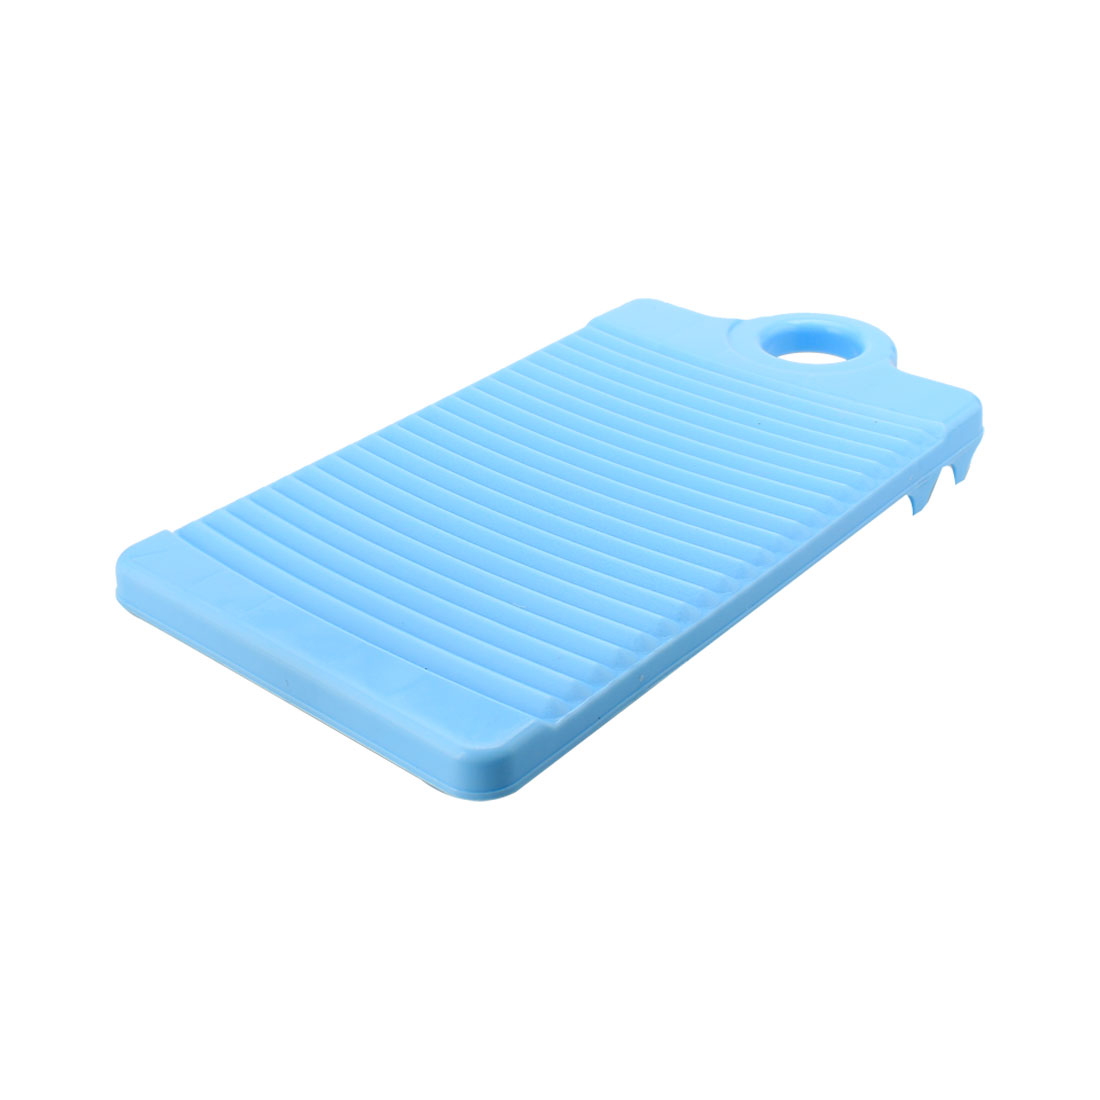 32cm Long Plastic Rectangle Washboard Washing Clothes Laundry Board Blue